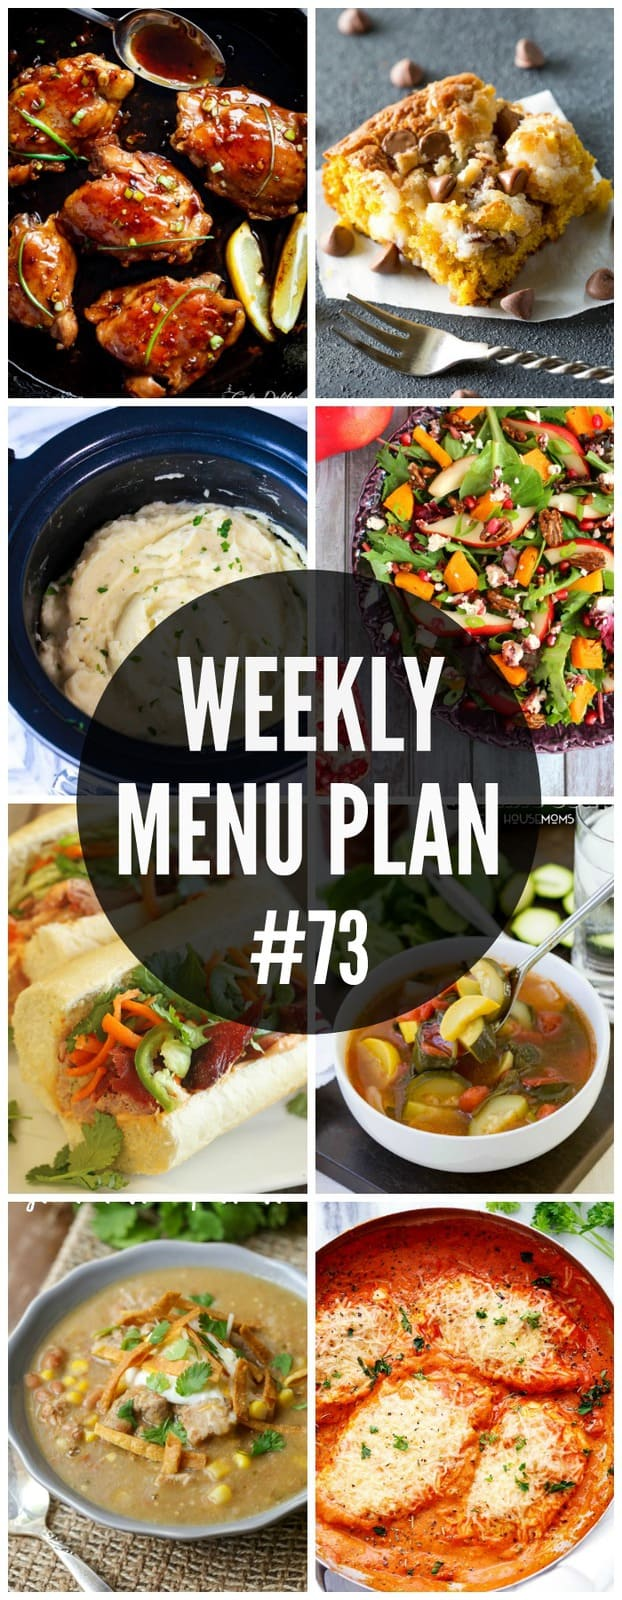 A delicious collection of dinner, side dish and dessert recipes to help you plan your weekly menu.